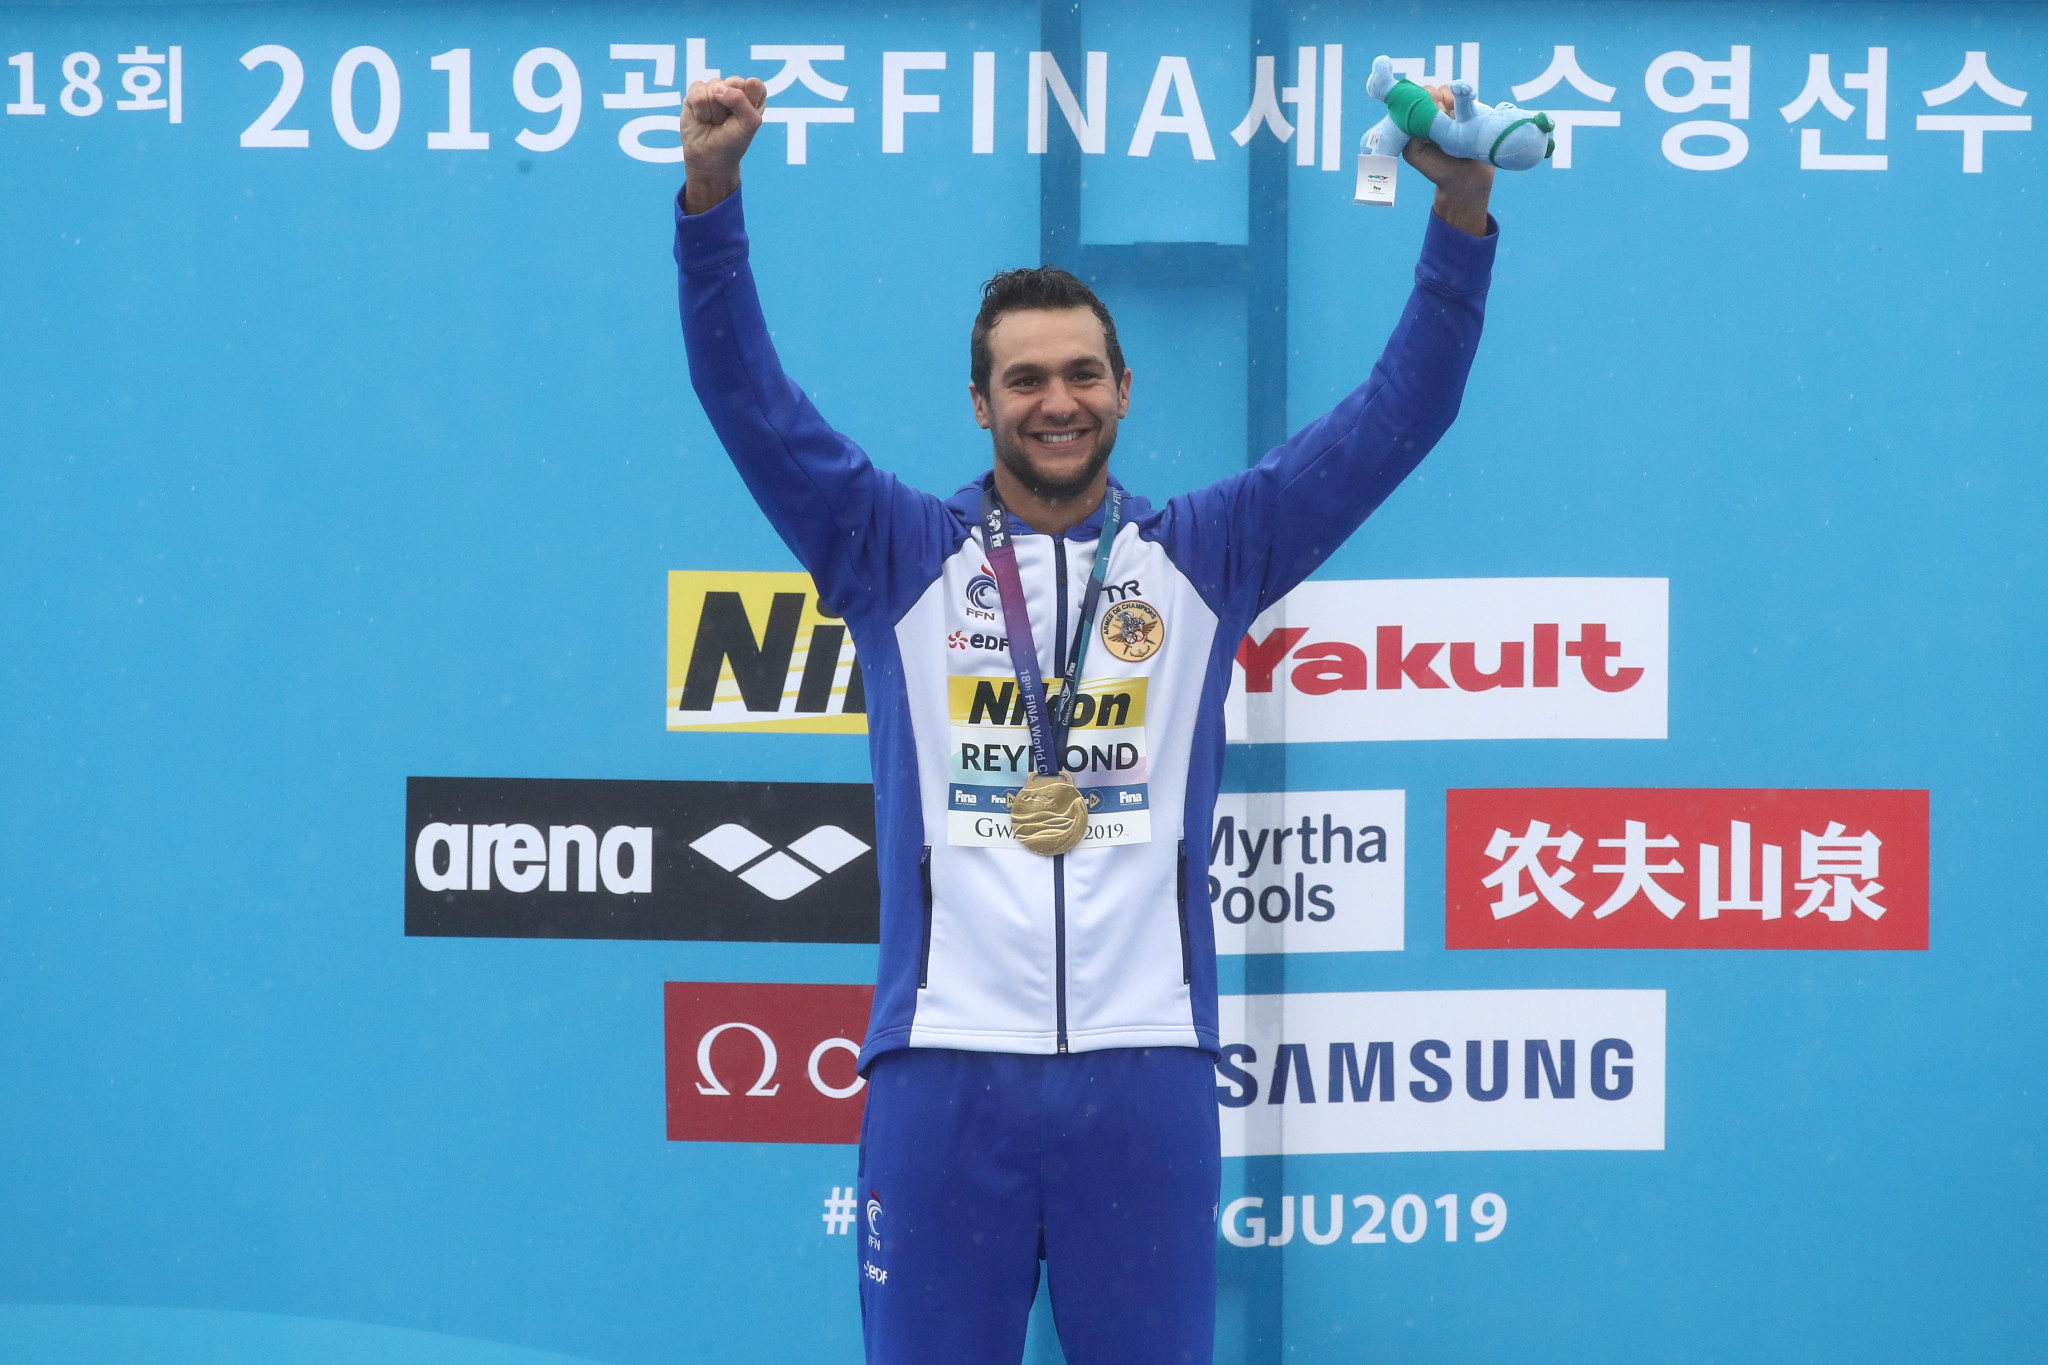 Reymond claims men's 25km open water world title in Gwangju